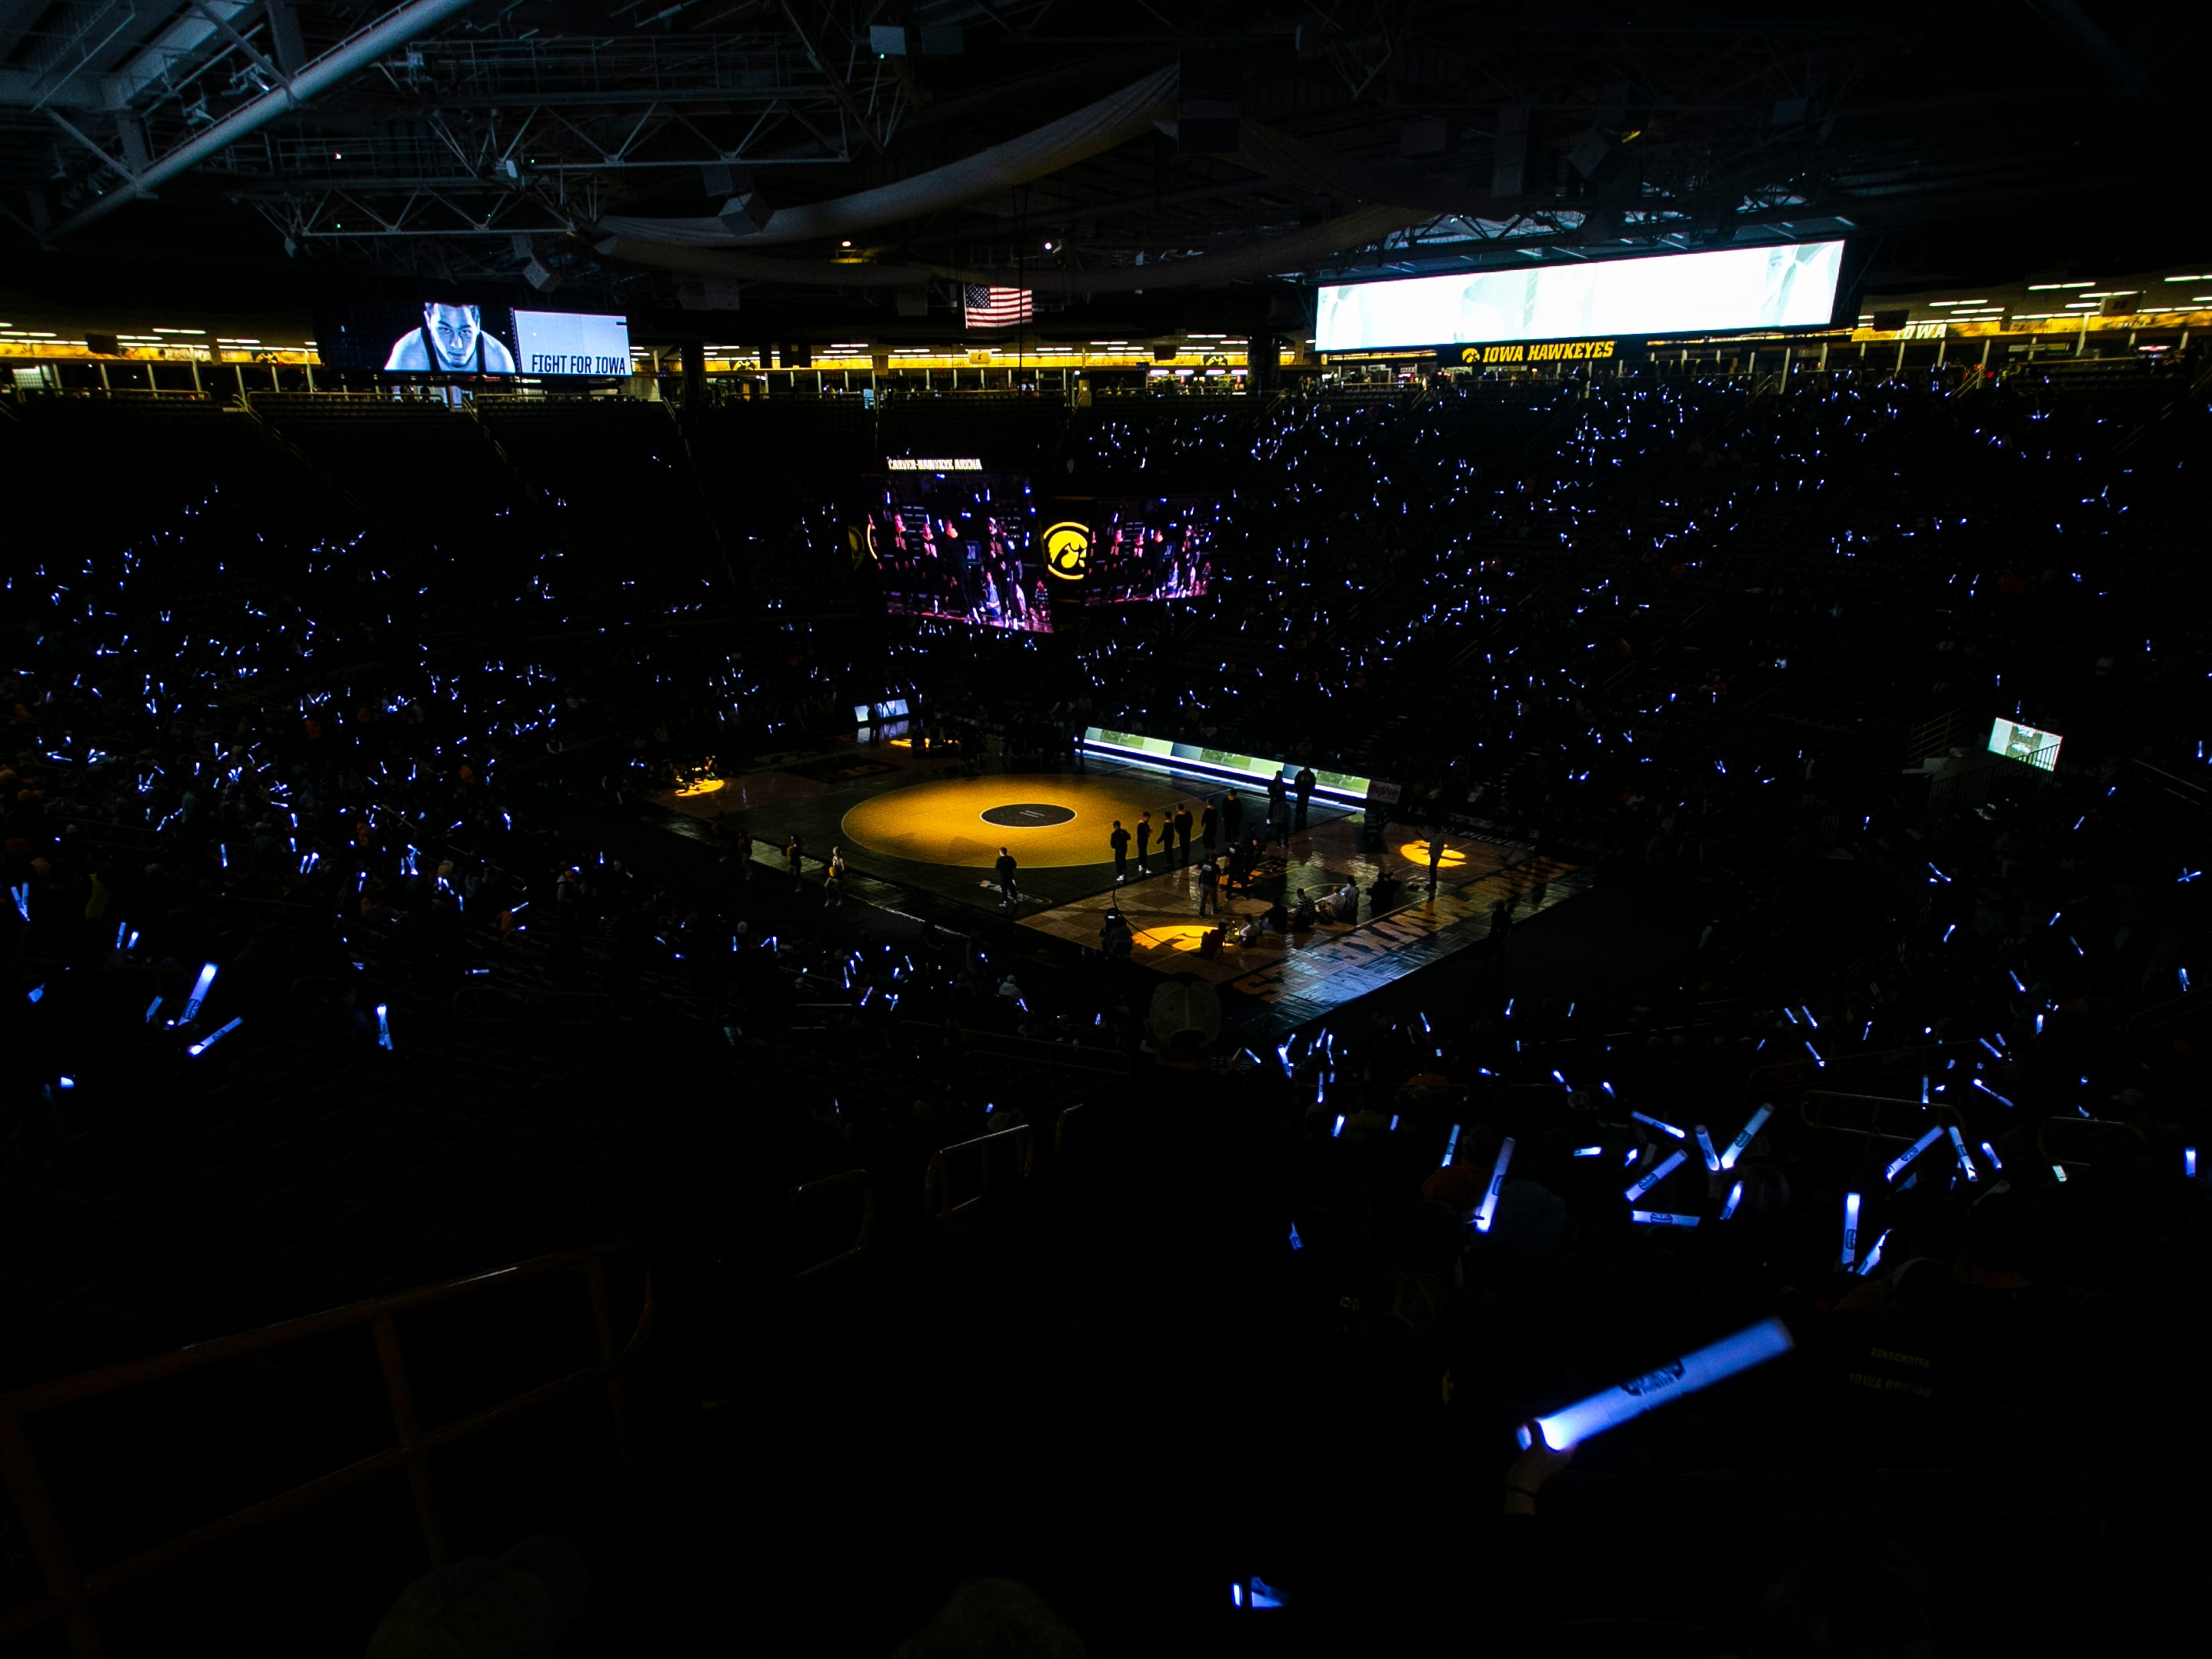 Fans wave glow-sticks before a NCAA Big Ten Conference wrestling dual on Friday, Jan. 18, 2019, at Carver-Hawkeye Arena in Iowa City, Iowa.